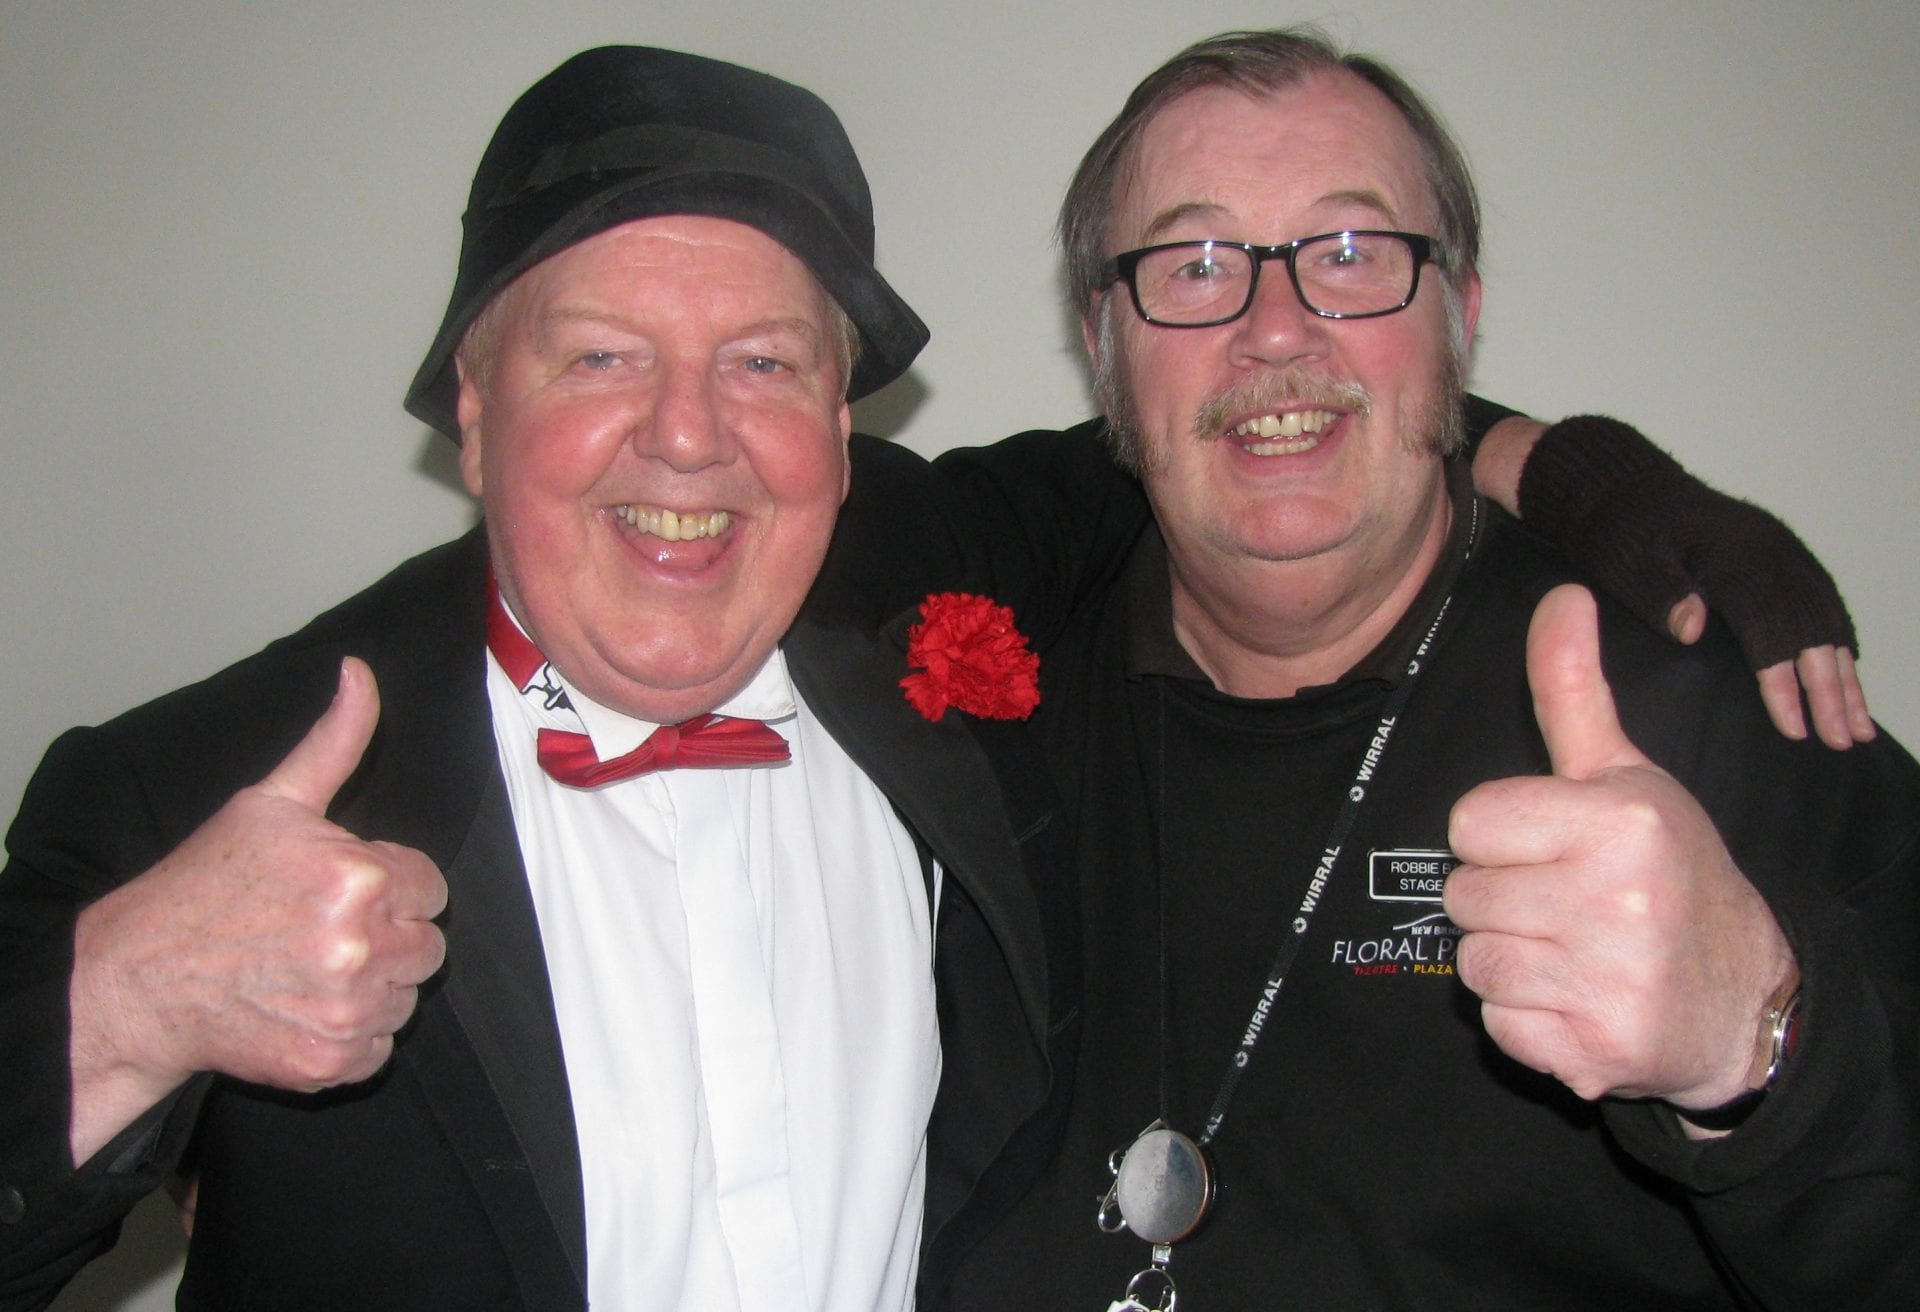 Jimmy Cricket with stage doorkeeper Robert at the Floral Pavilion in New Brighton